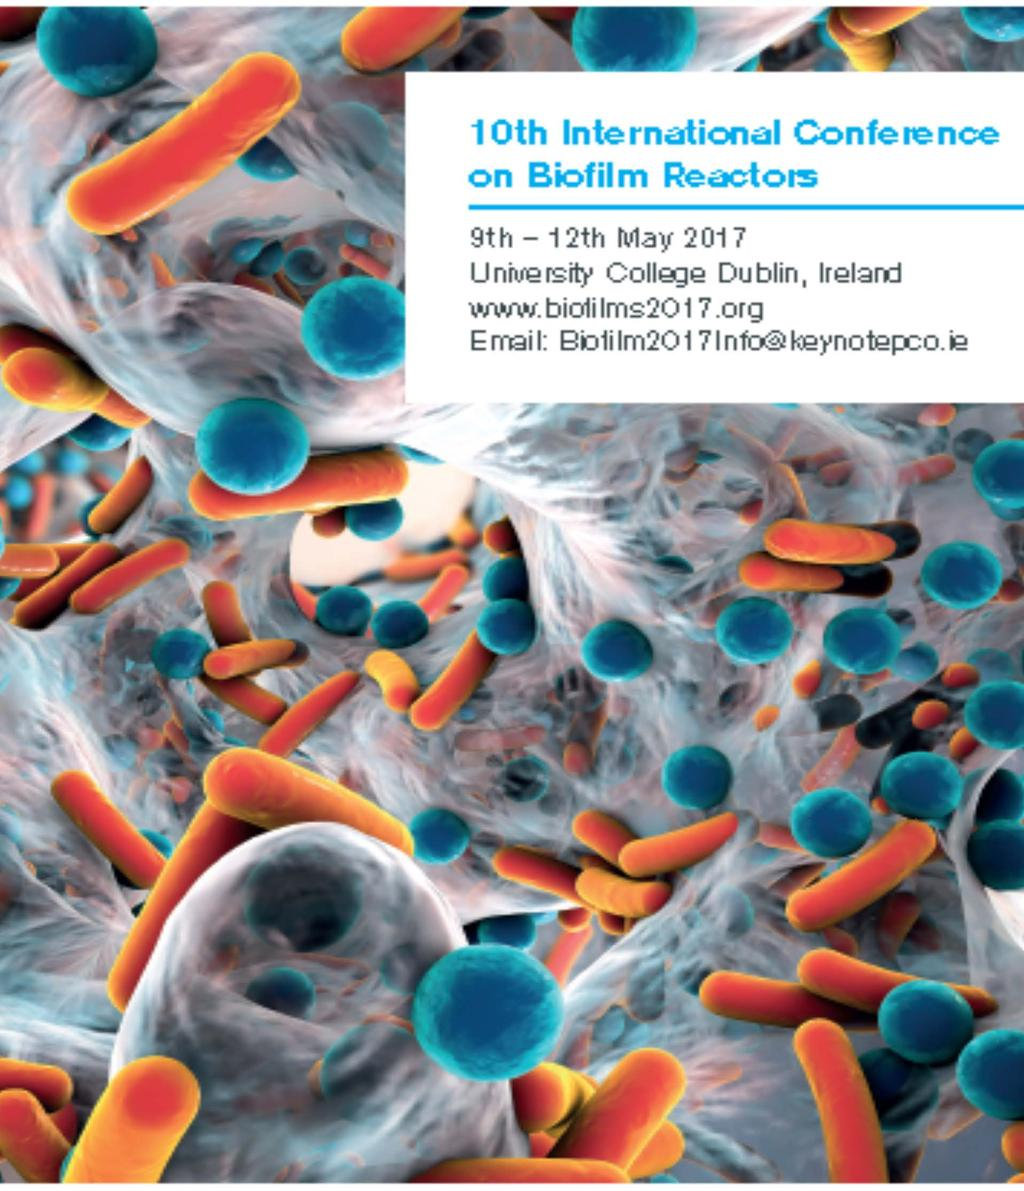 10 TH INTERNATIONAL CONFERENCE ON BIOFILM